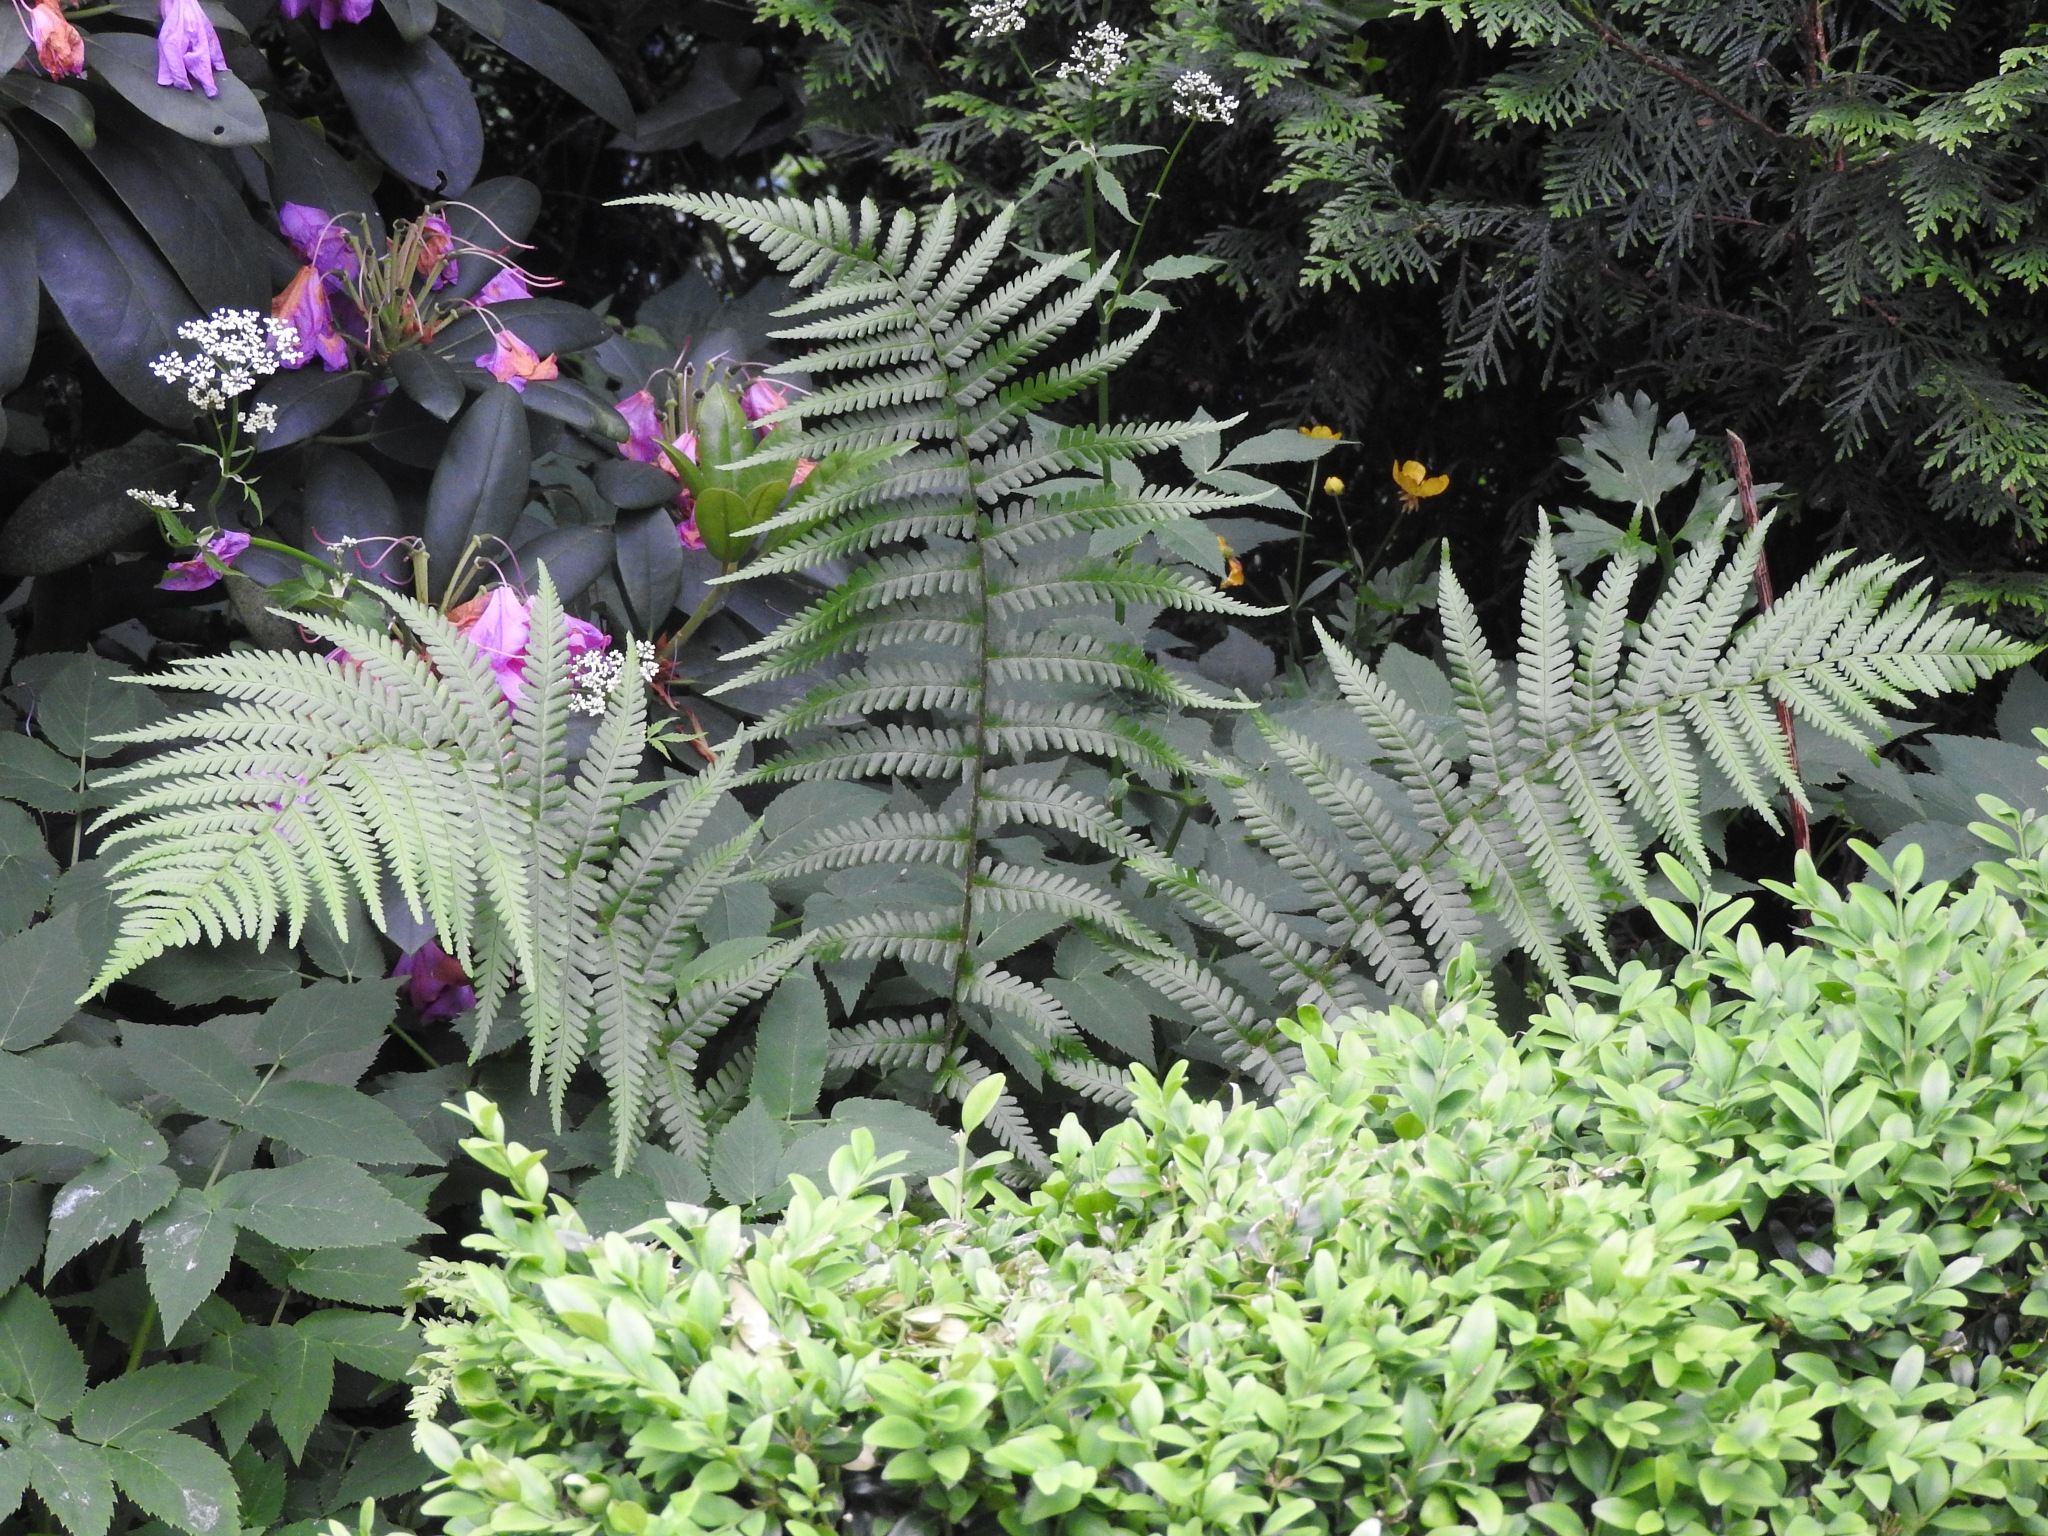 Some wild ferns appeared this summer in the garden by Paolo Paparazzi